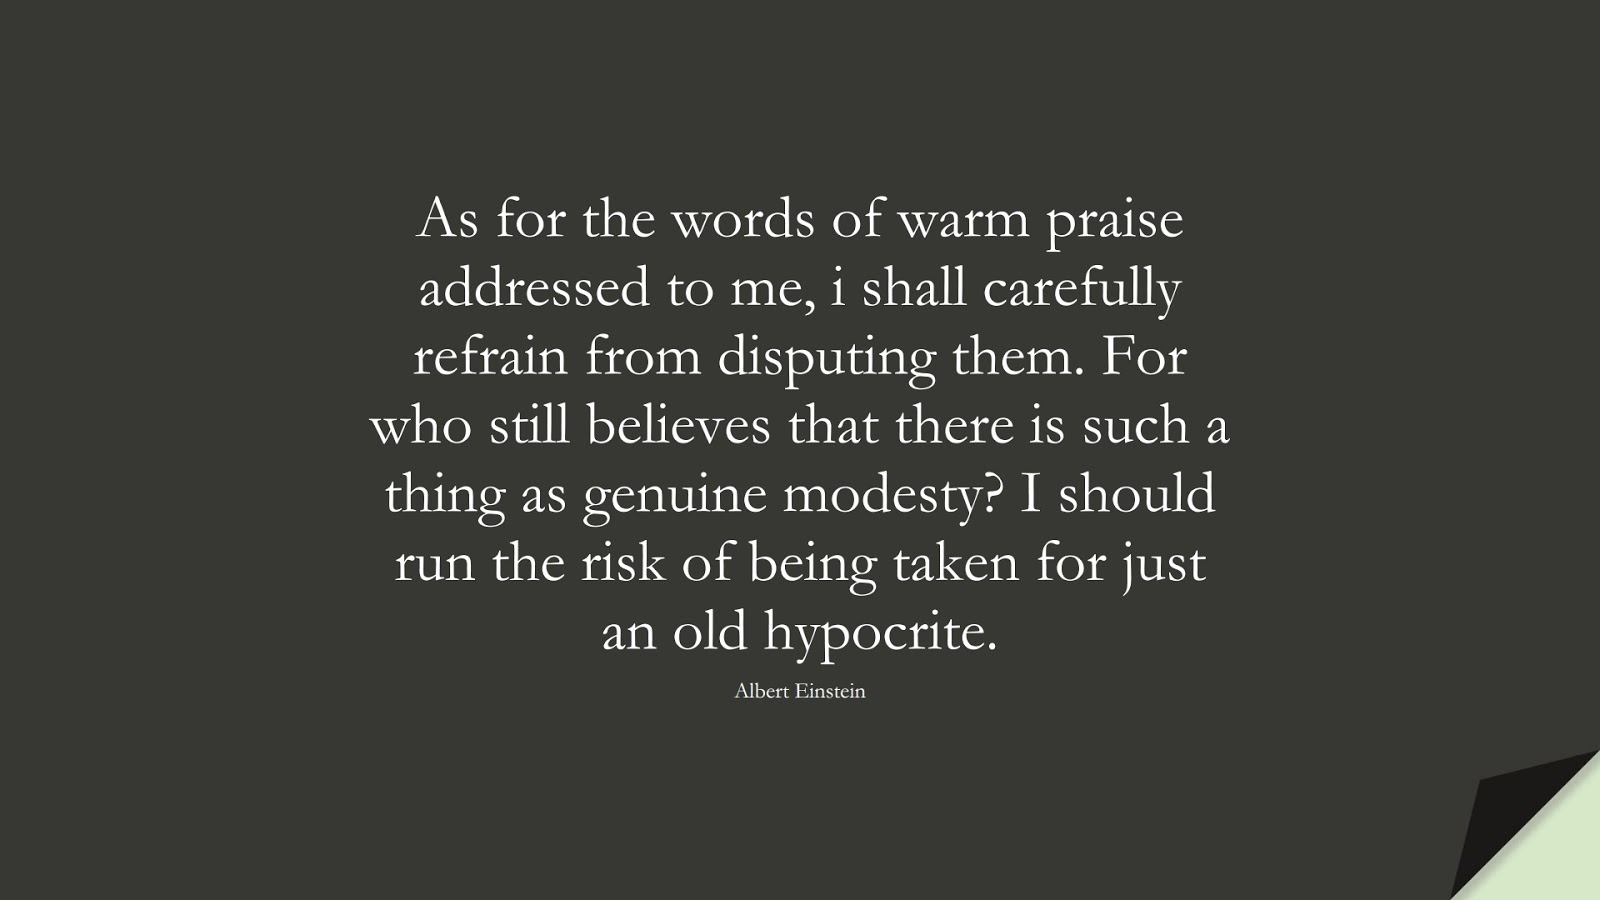 As for the words of warm praise addressed to me, i shall carefully refrain from disputing them. For who still believes that there is such a thing as genuine modesty? I should run the risk of being taken for just an old hypocrite. (Albert Einstein);  #AlbertEnsteinQuotes